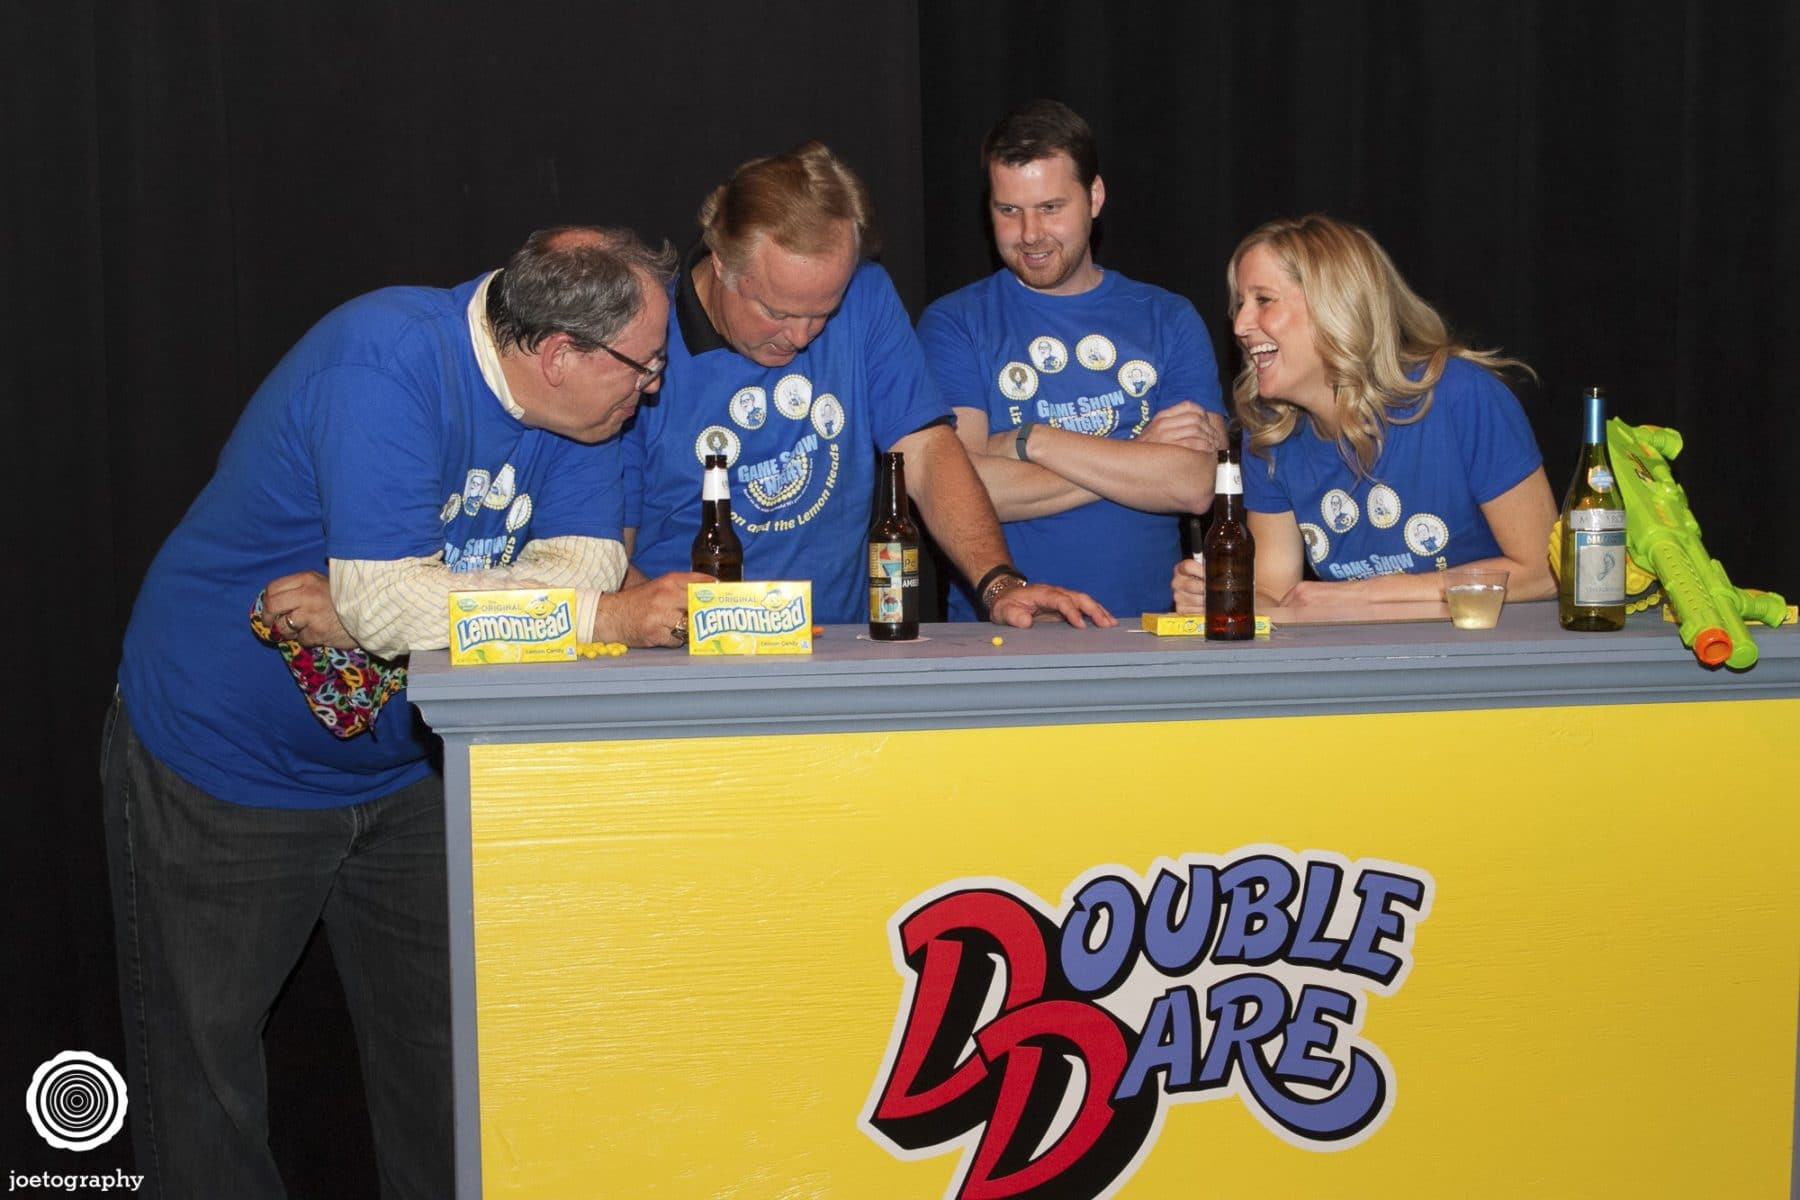 lemonade-day-double-dare-indianapolis-25